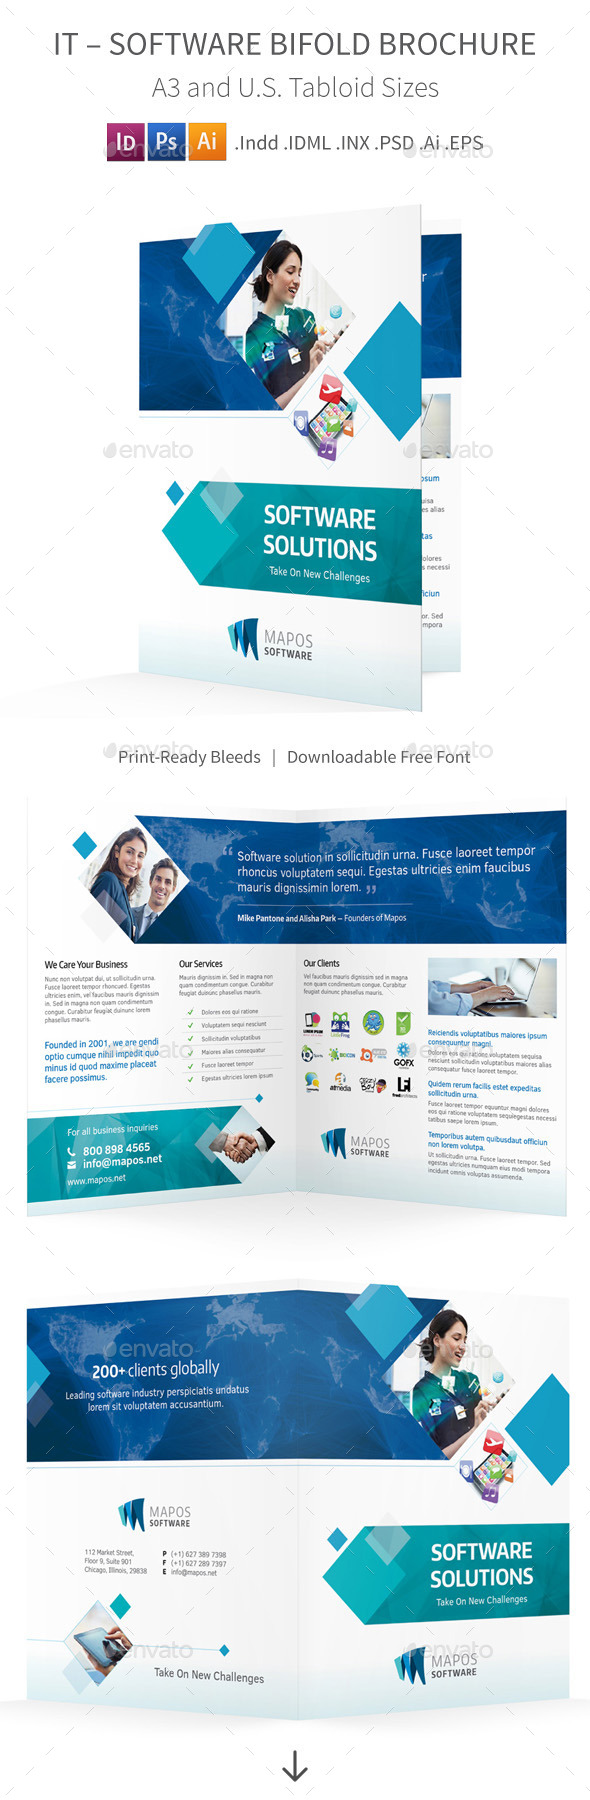 IT Software Bifold Halffold Brochure